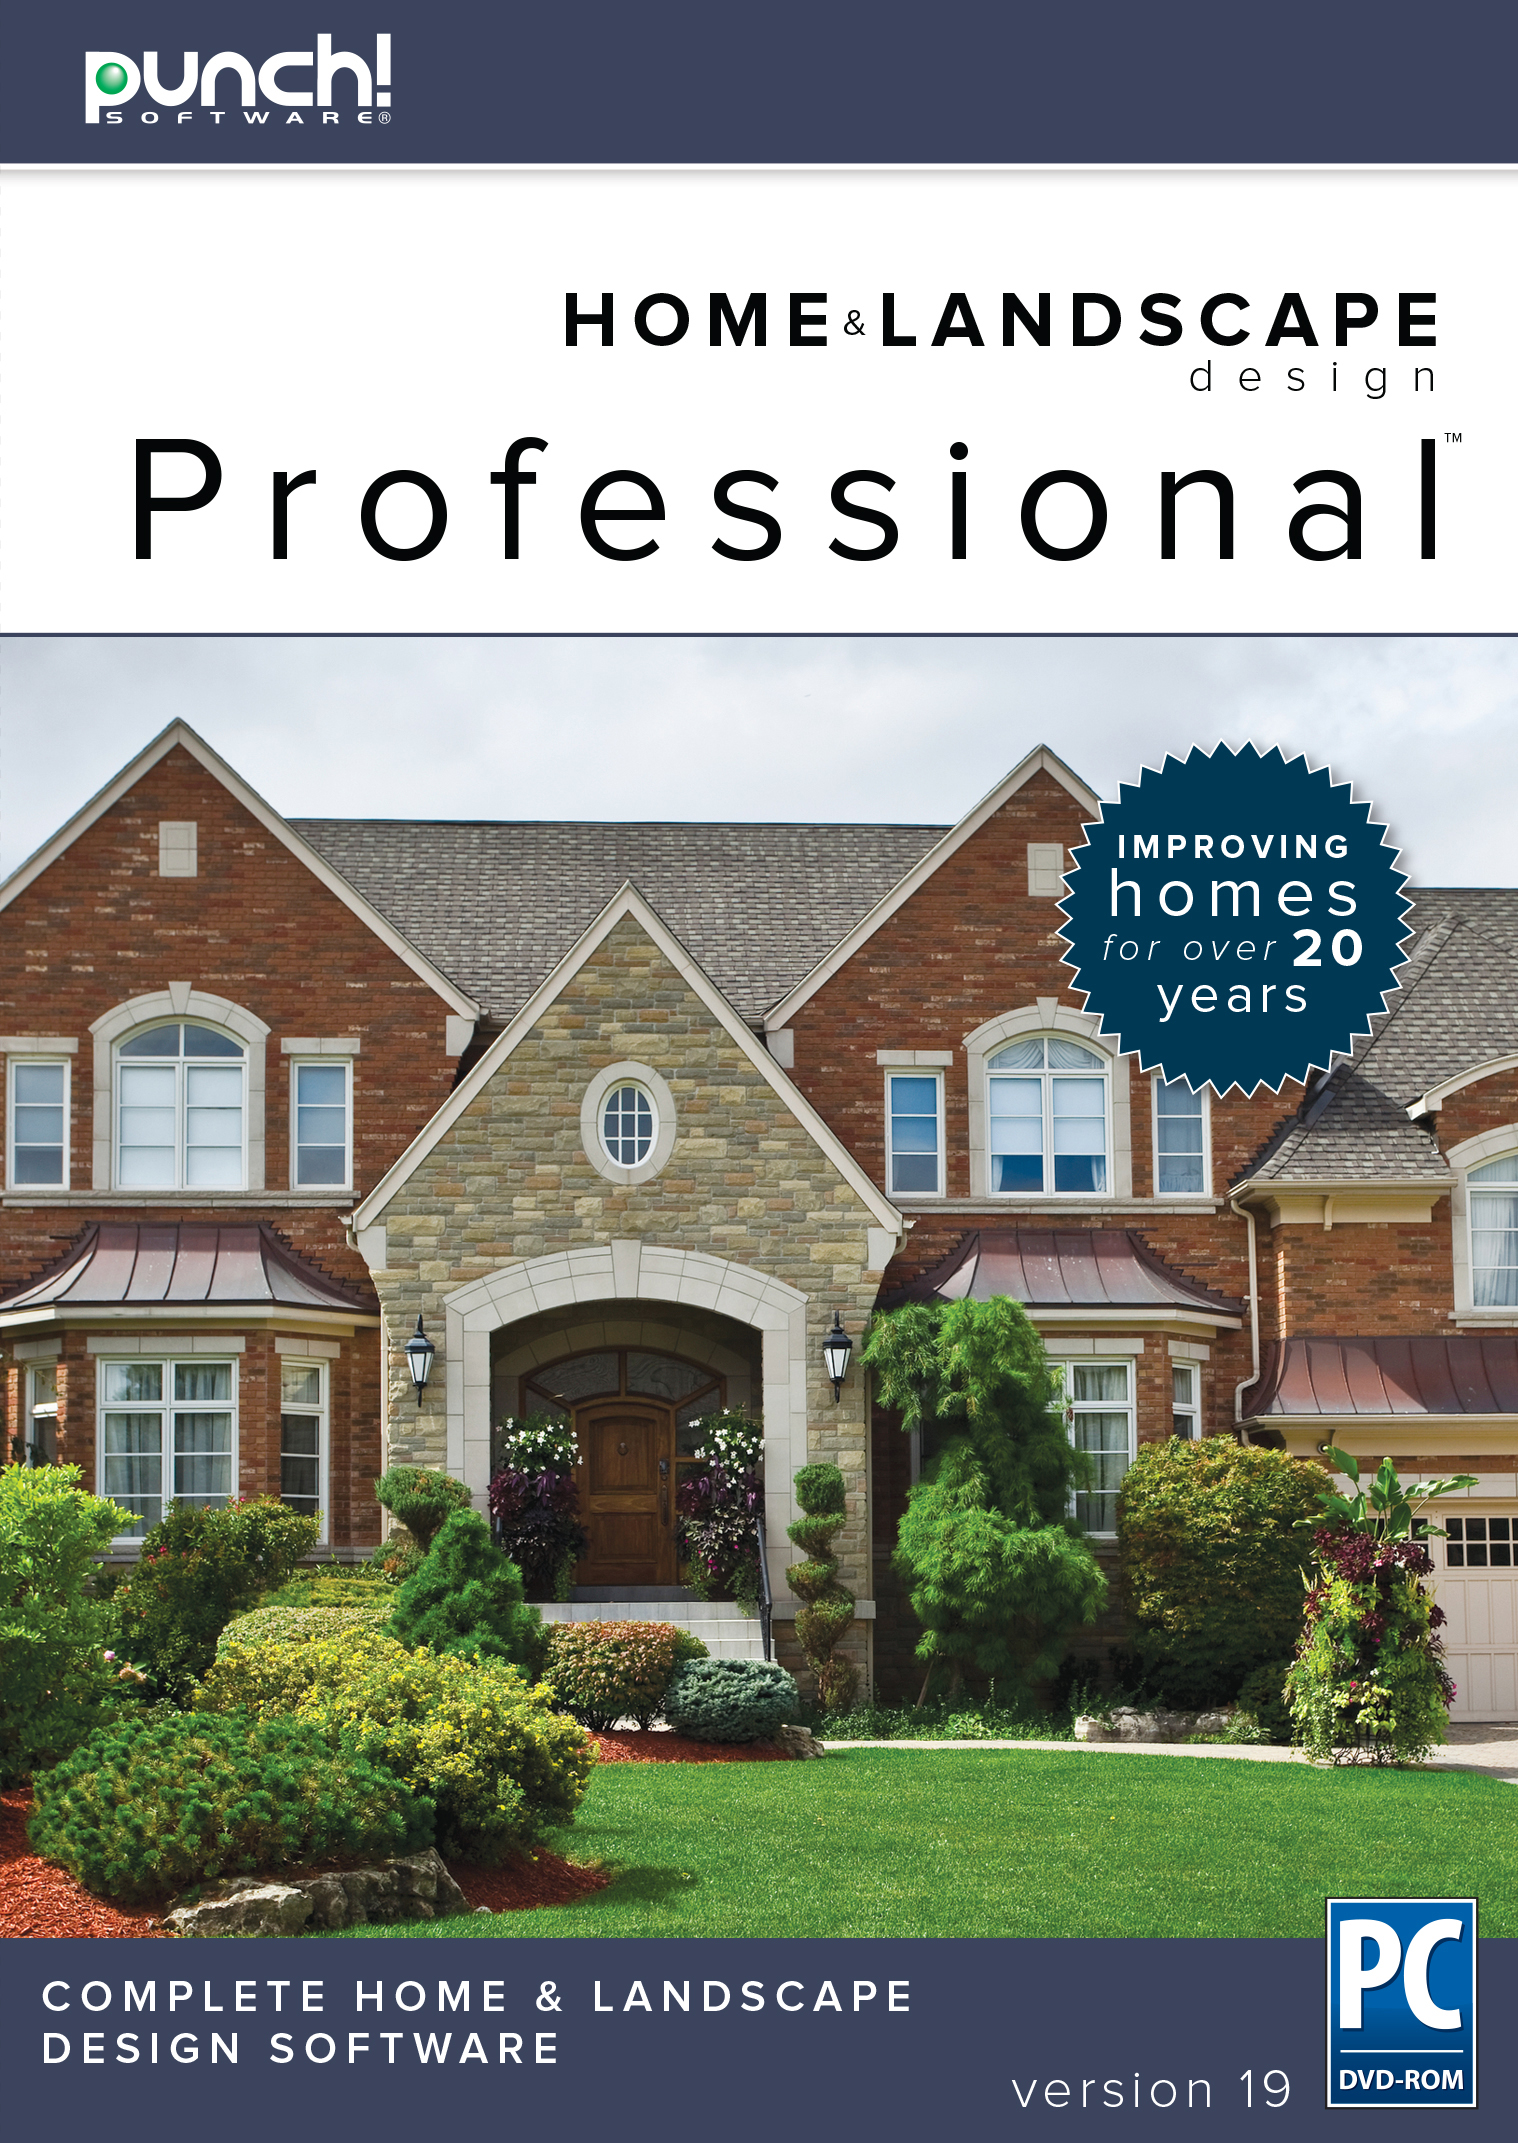 Punch! Home & Landscape Design Professional v19 - Home Design Software for Windows PC [Download] (Easy Home Design Software)